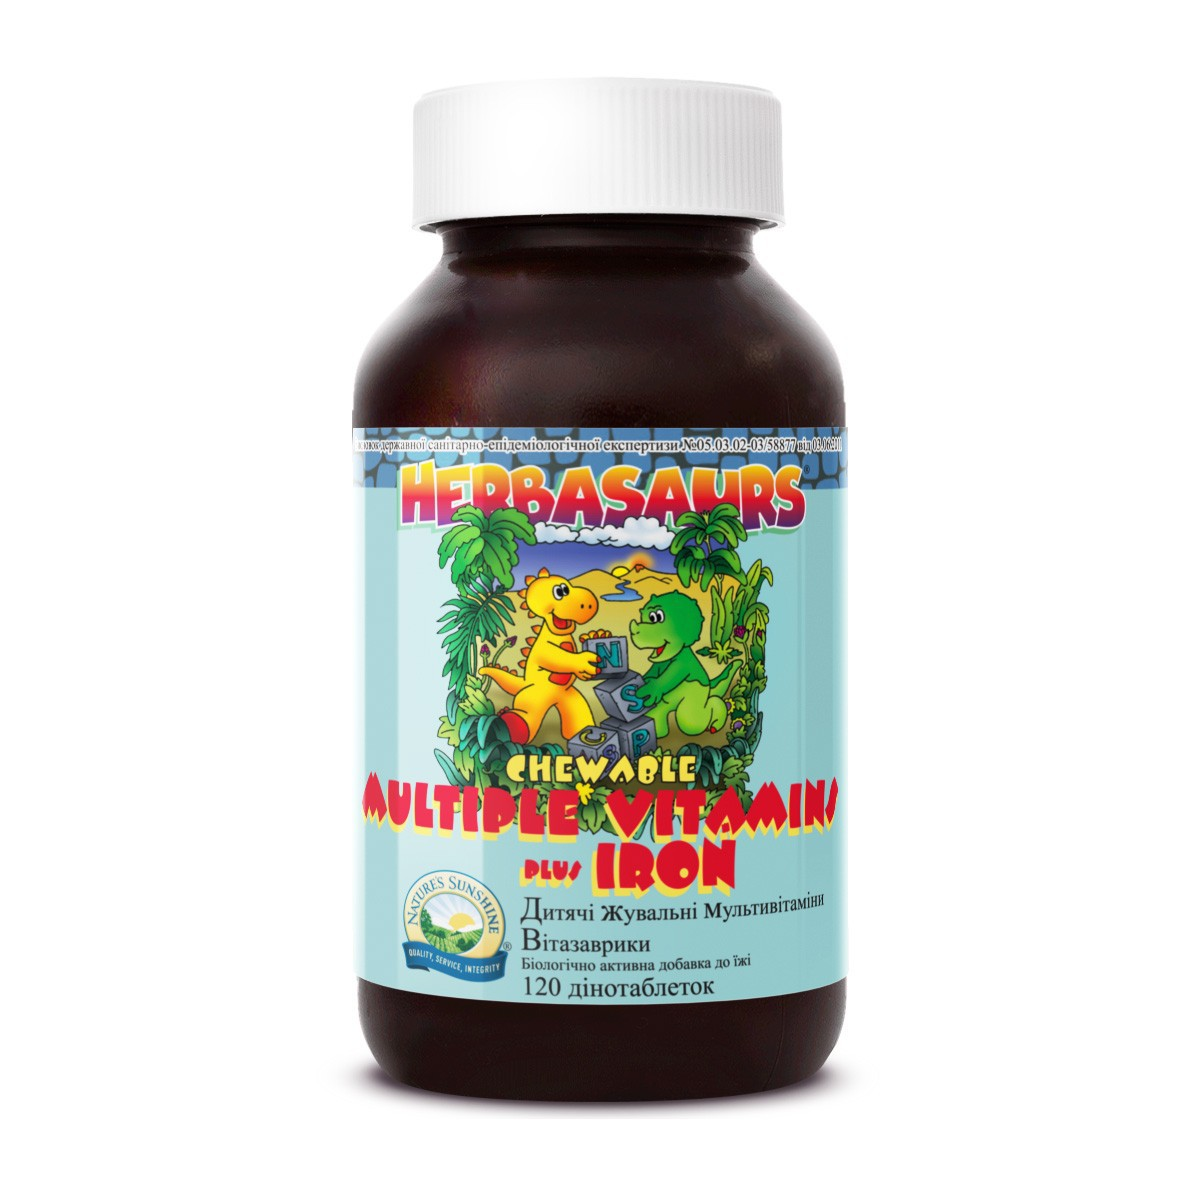 Children's Chewable Multiple Vitamins plus Iron - Herbasaurs